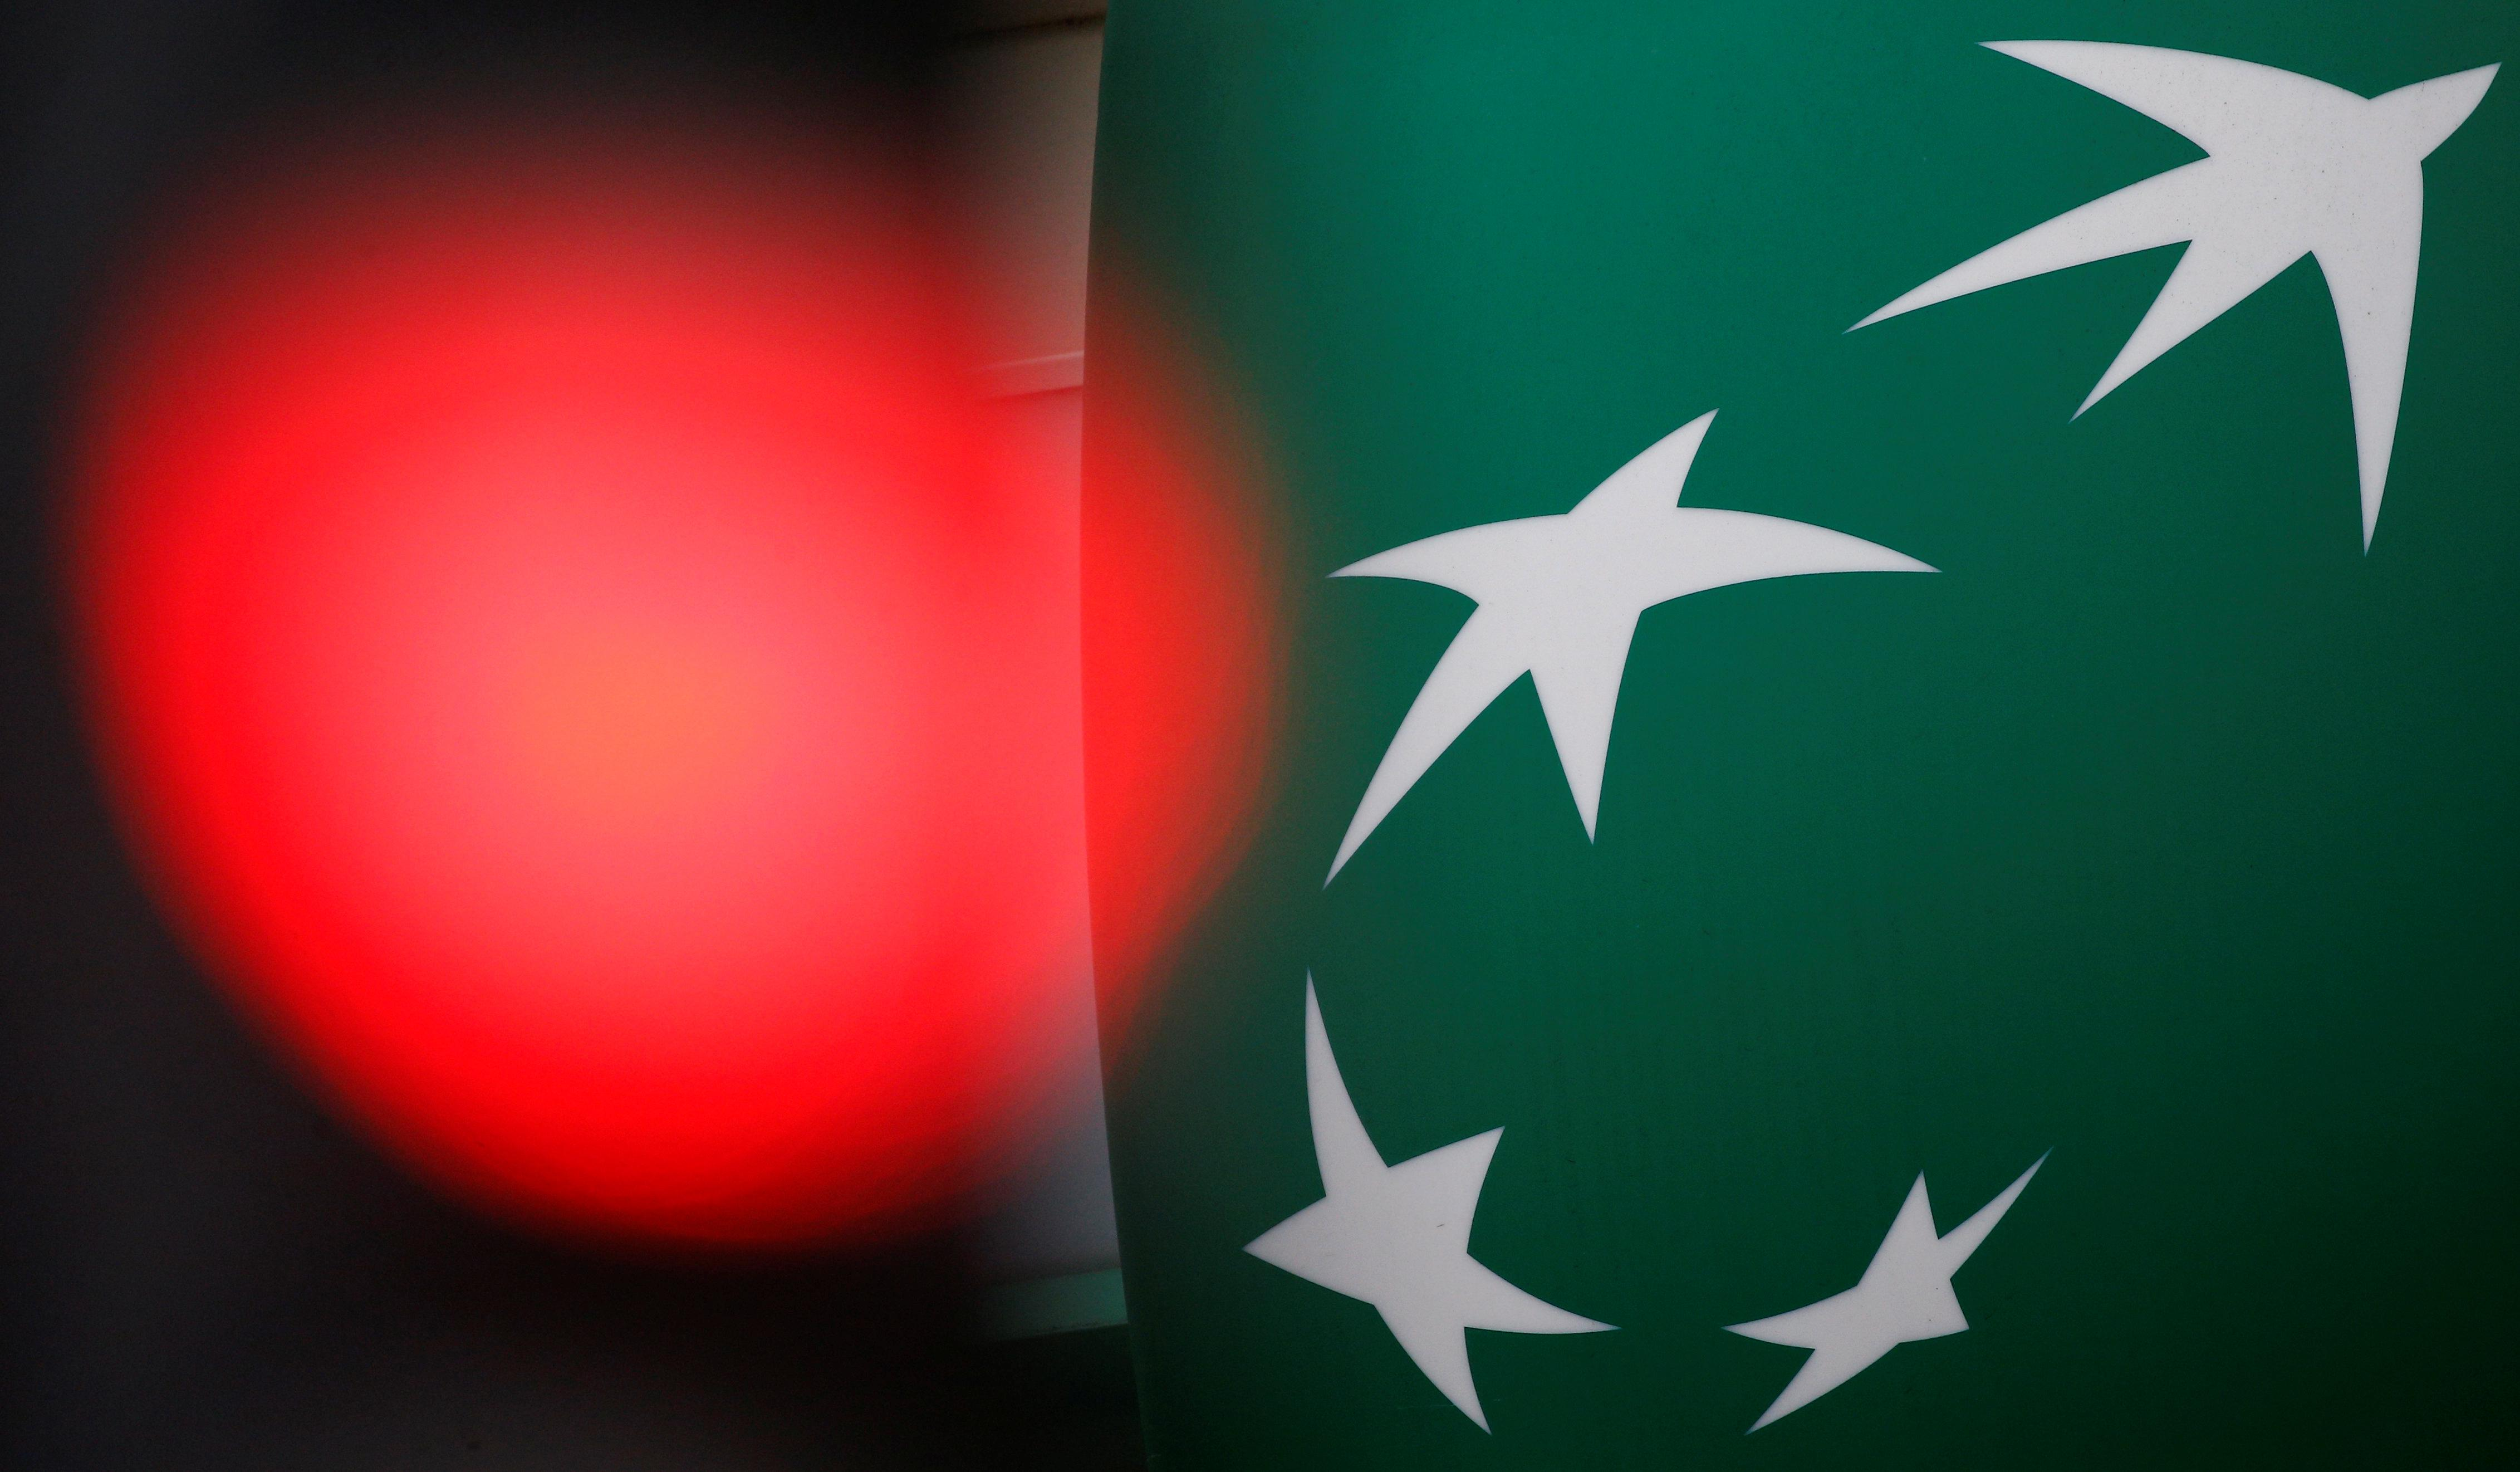 BNP Paribas buys Allfunds stake as fund managers cut costs